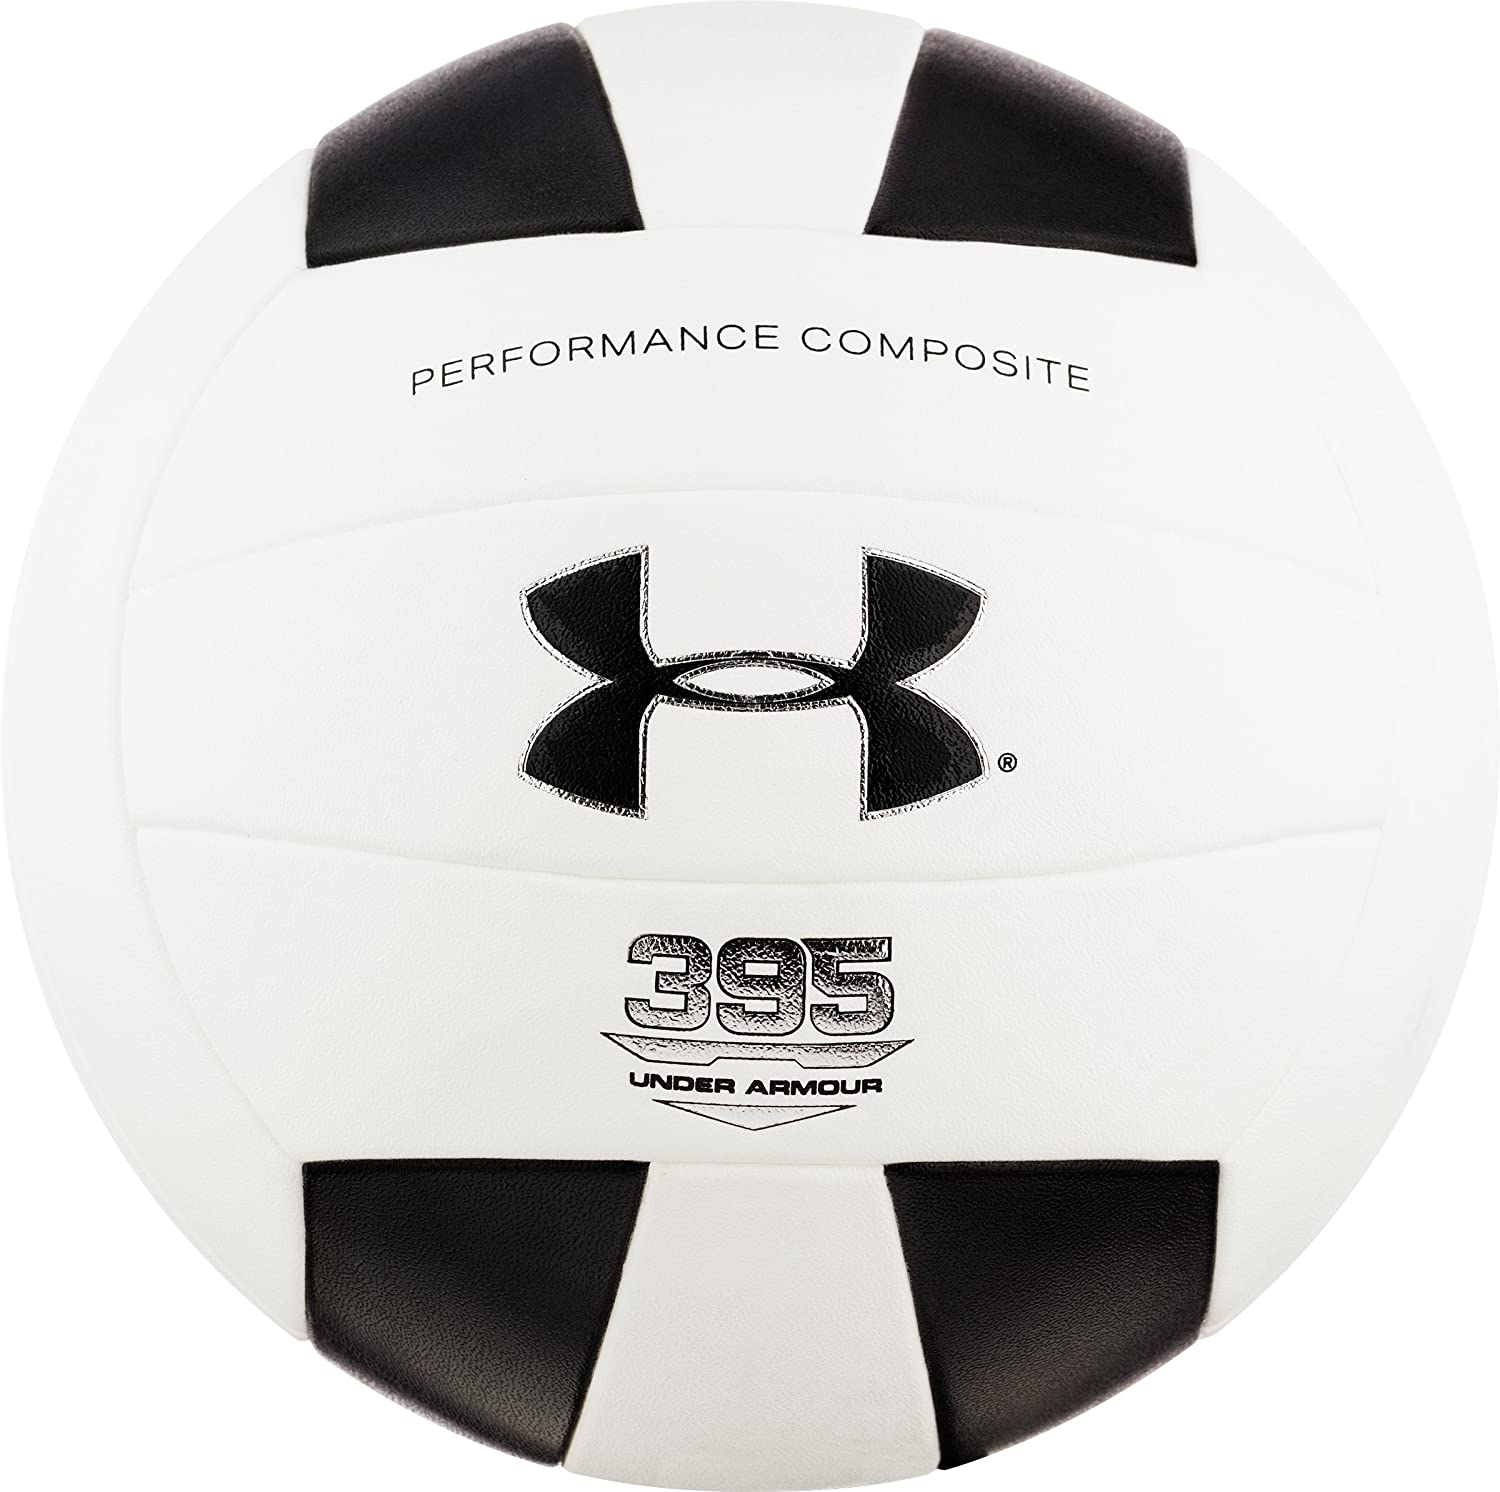 VB 217 Under Armour 395 Composite Indoor Volleyball PSI 91 Inc